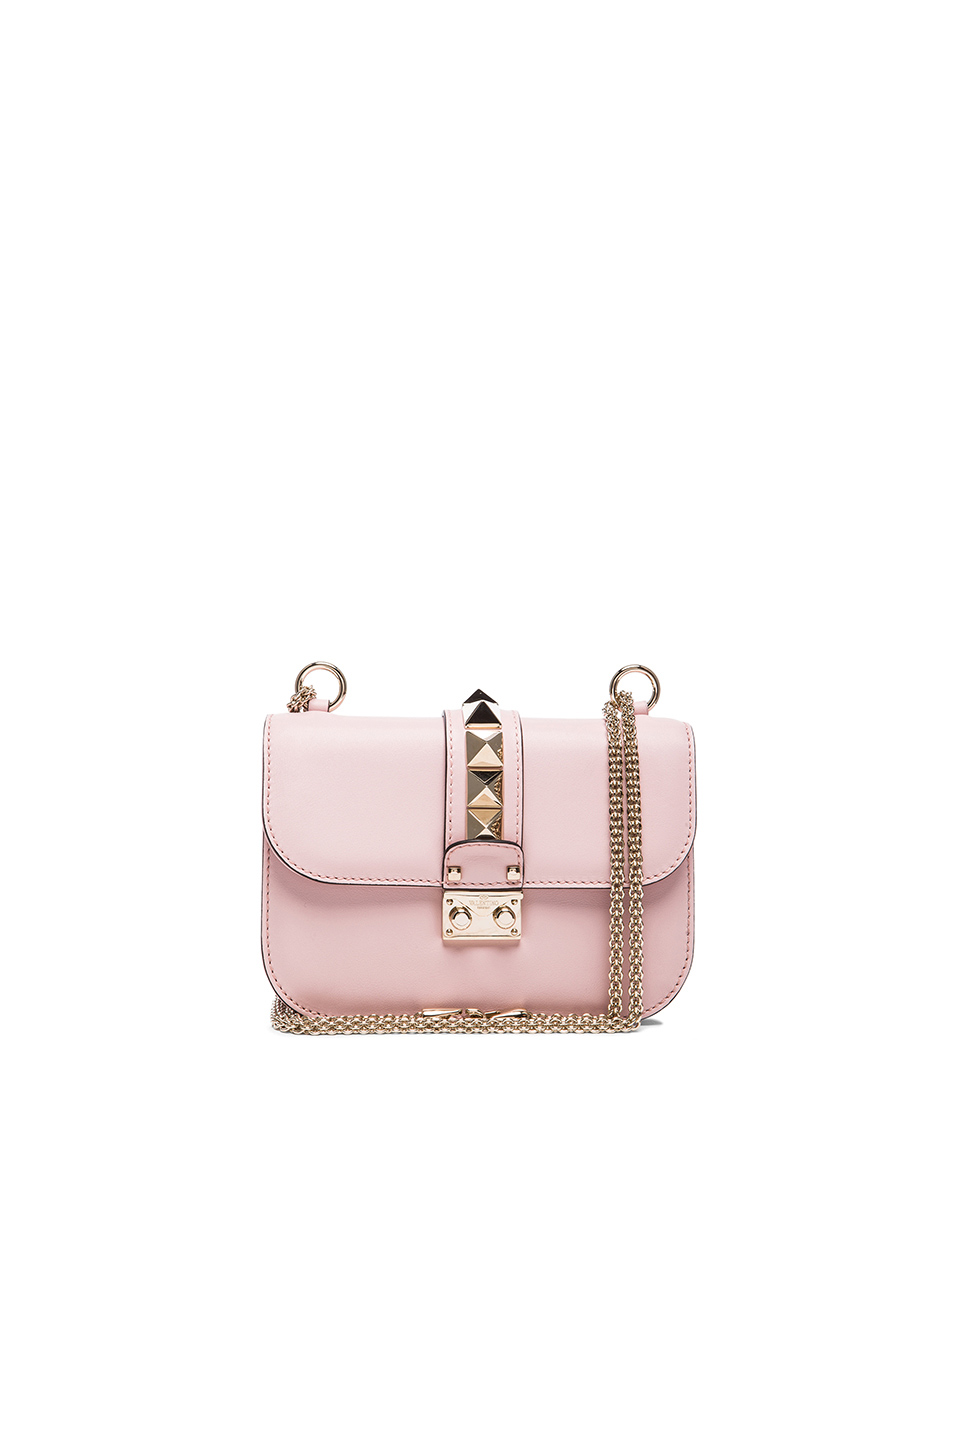 Valentino Small Lock Flap Bag in Pink